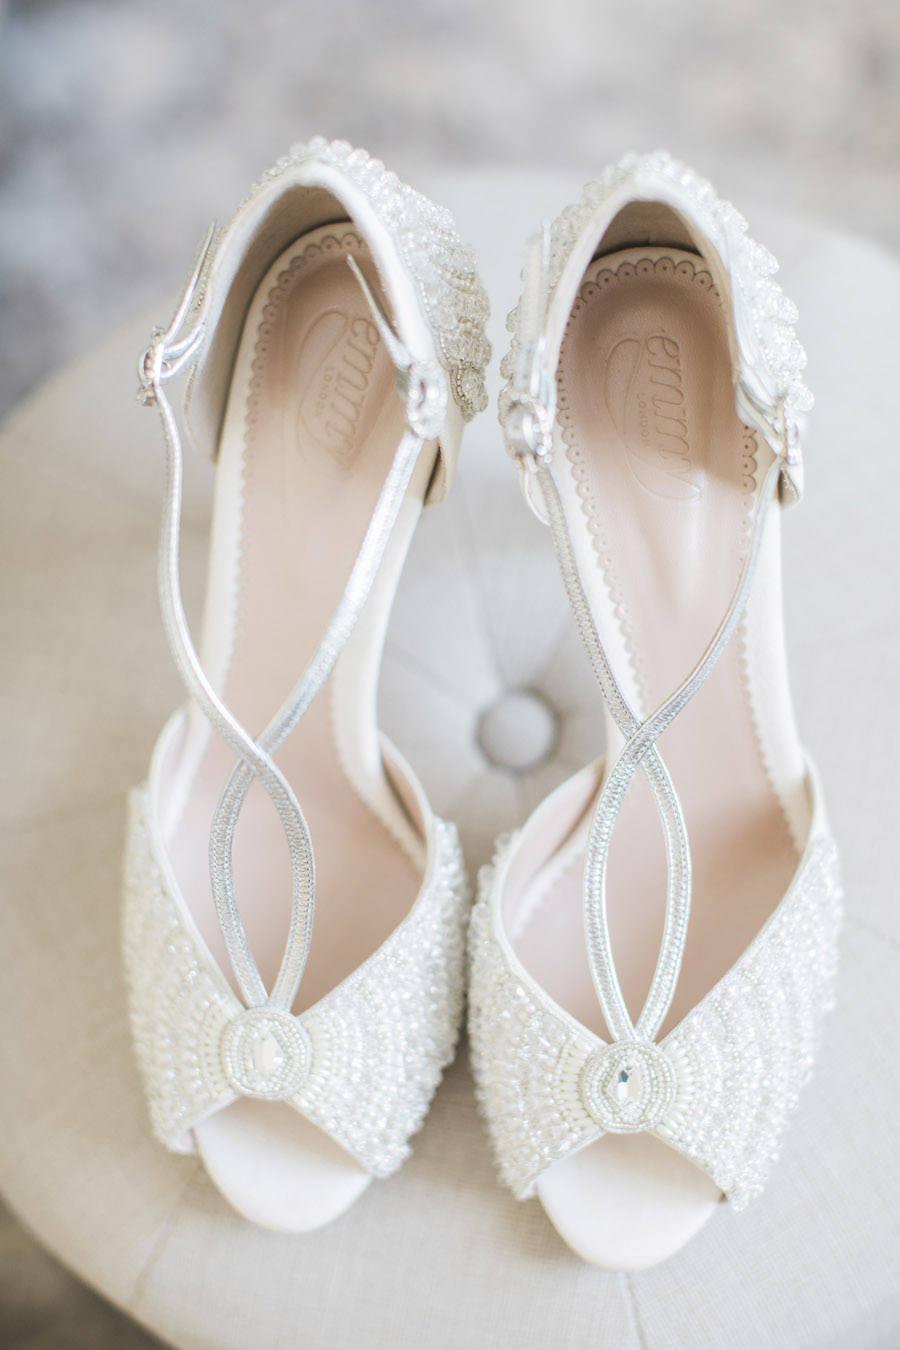 for bridesmaids everywhere, with love. Image credit Natalie D Photography (12)